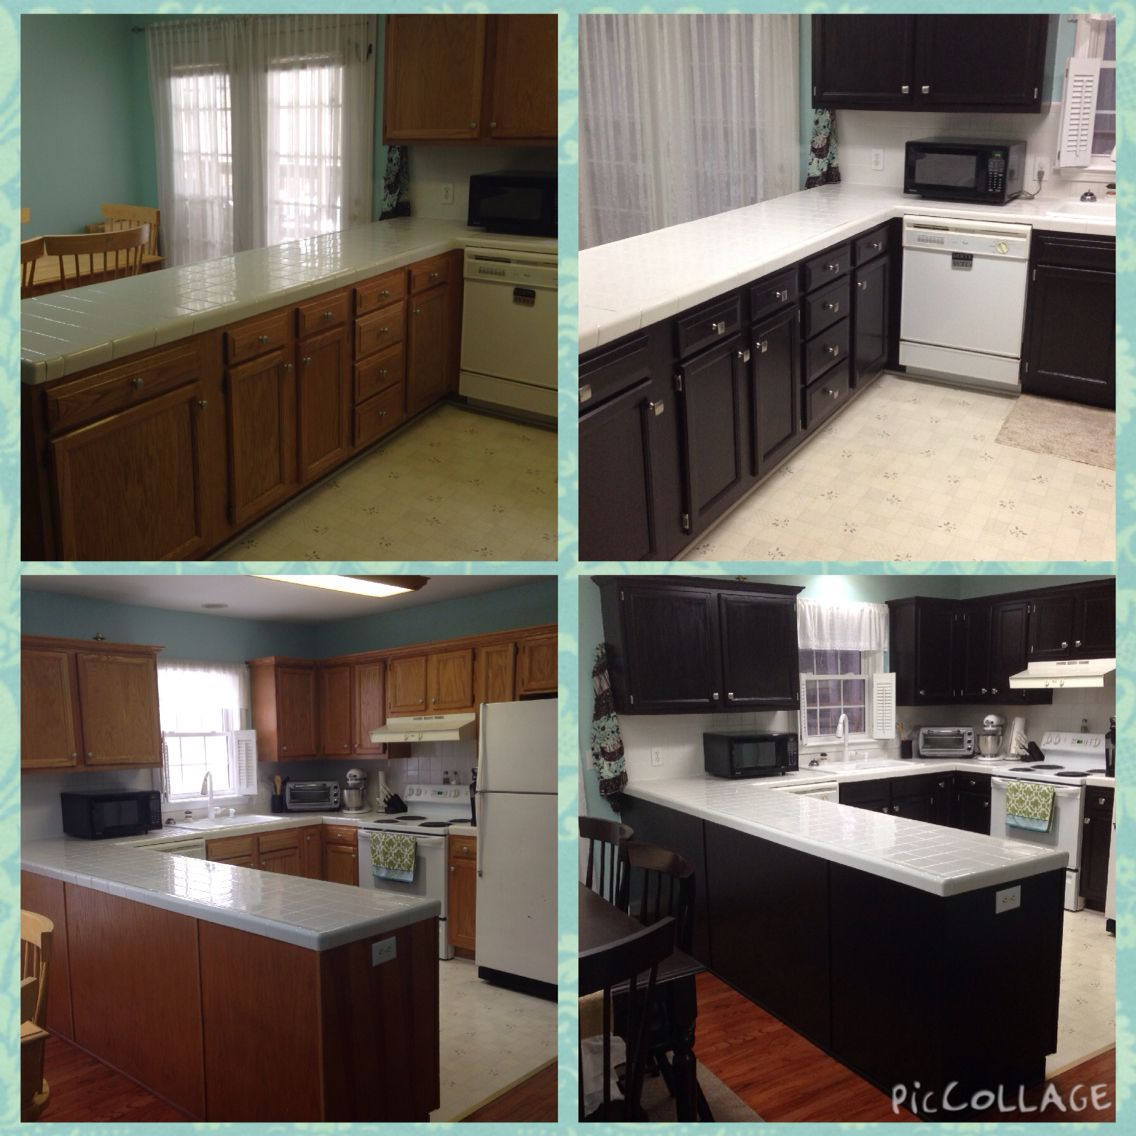 Redone Kitchen Cabinets: $200 Kitchen Cabinet Redo With General Finishes Java Gel